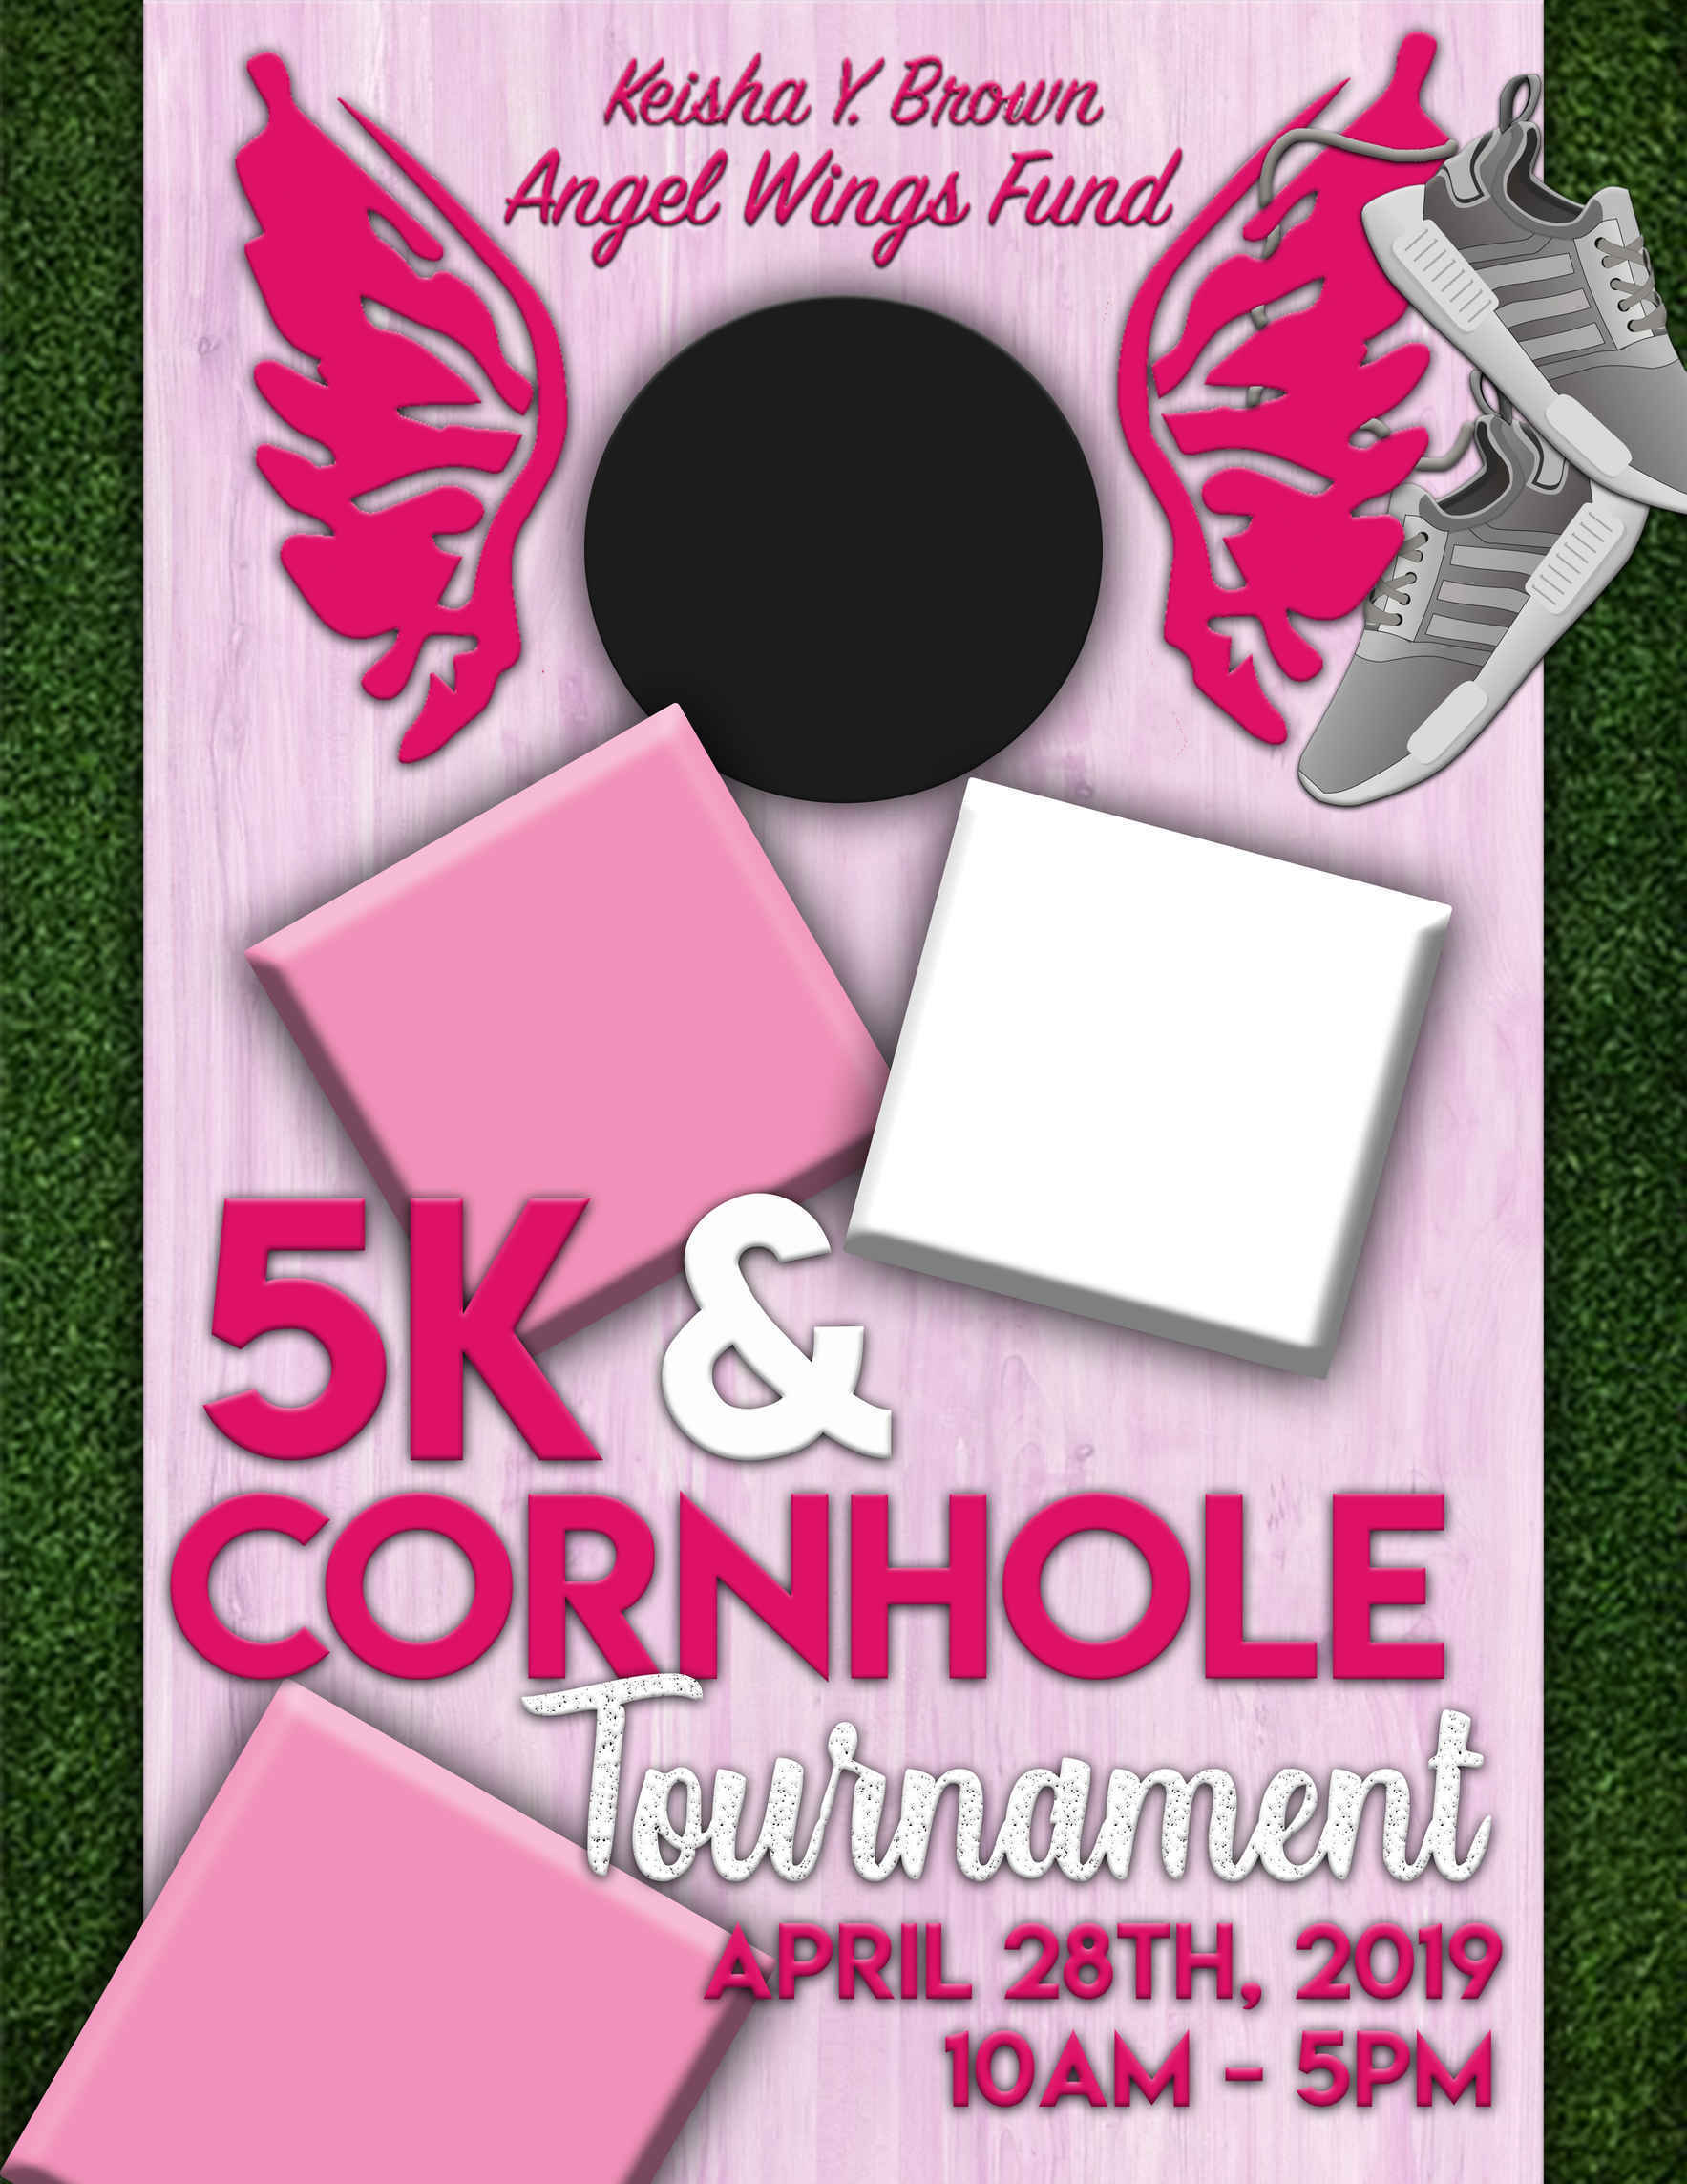 Play and Run for the Angel Wings Fund image